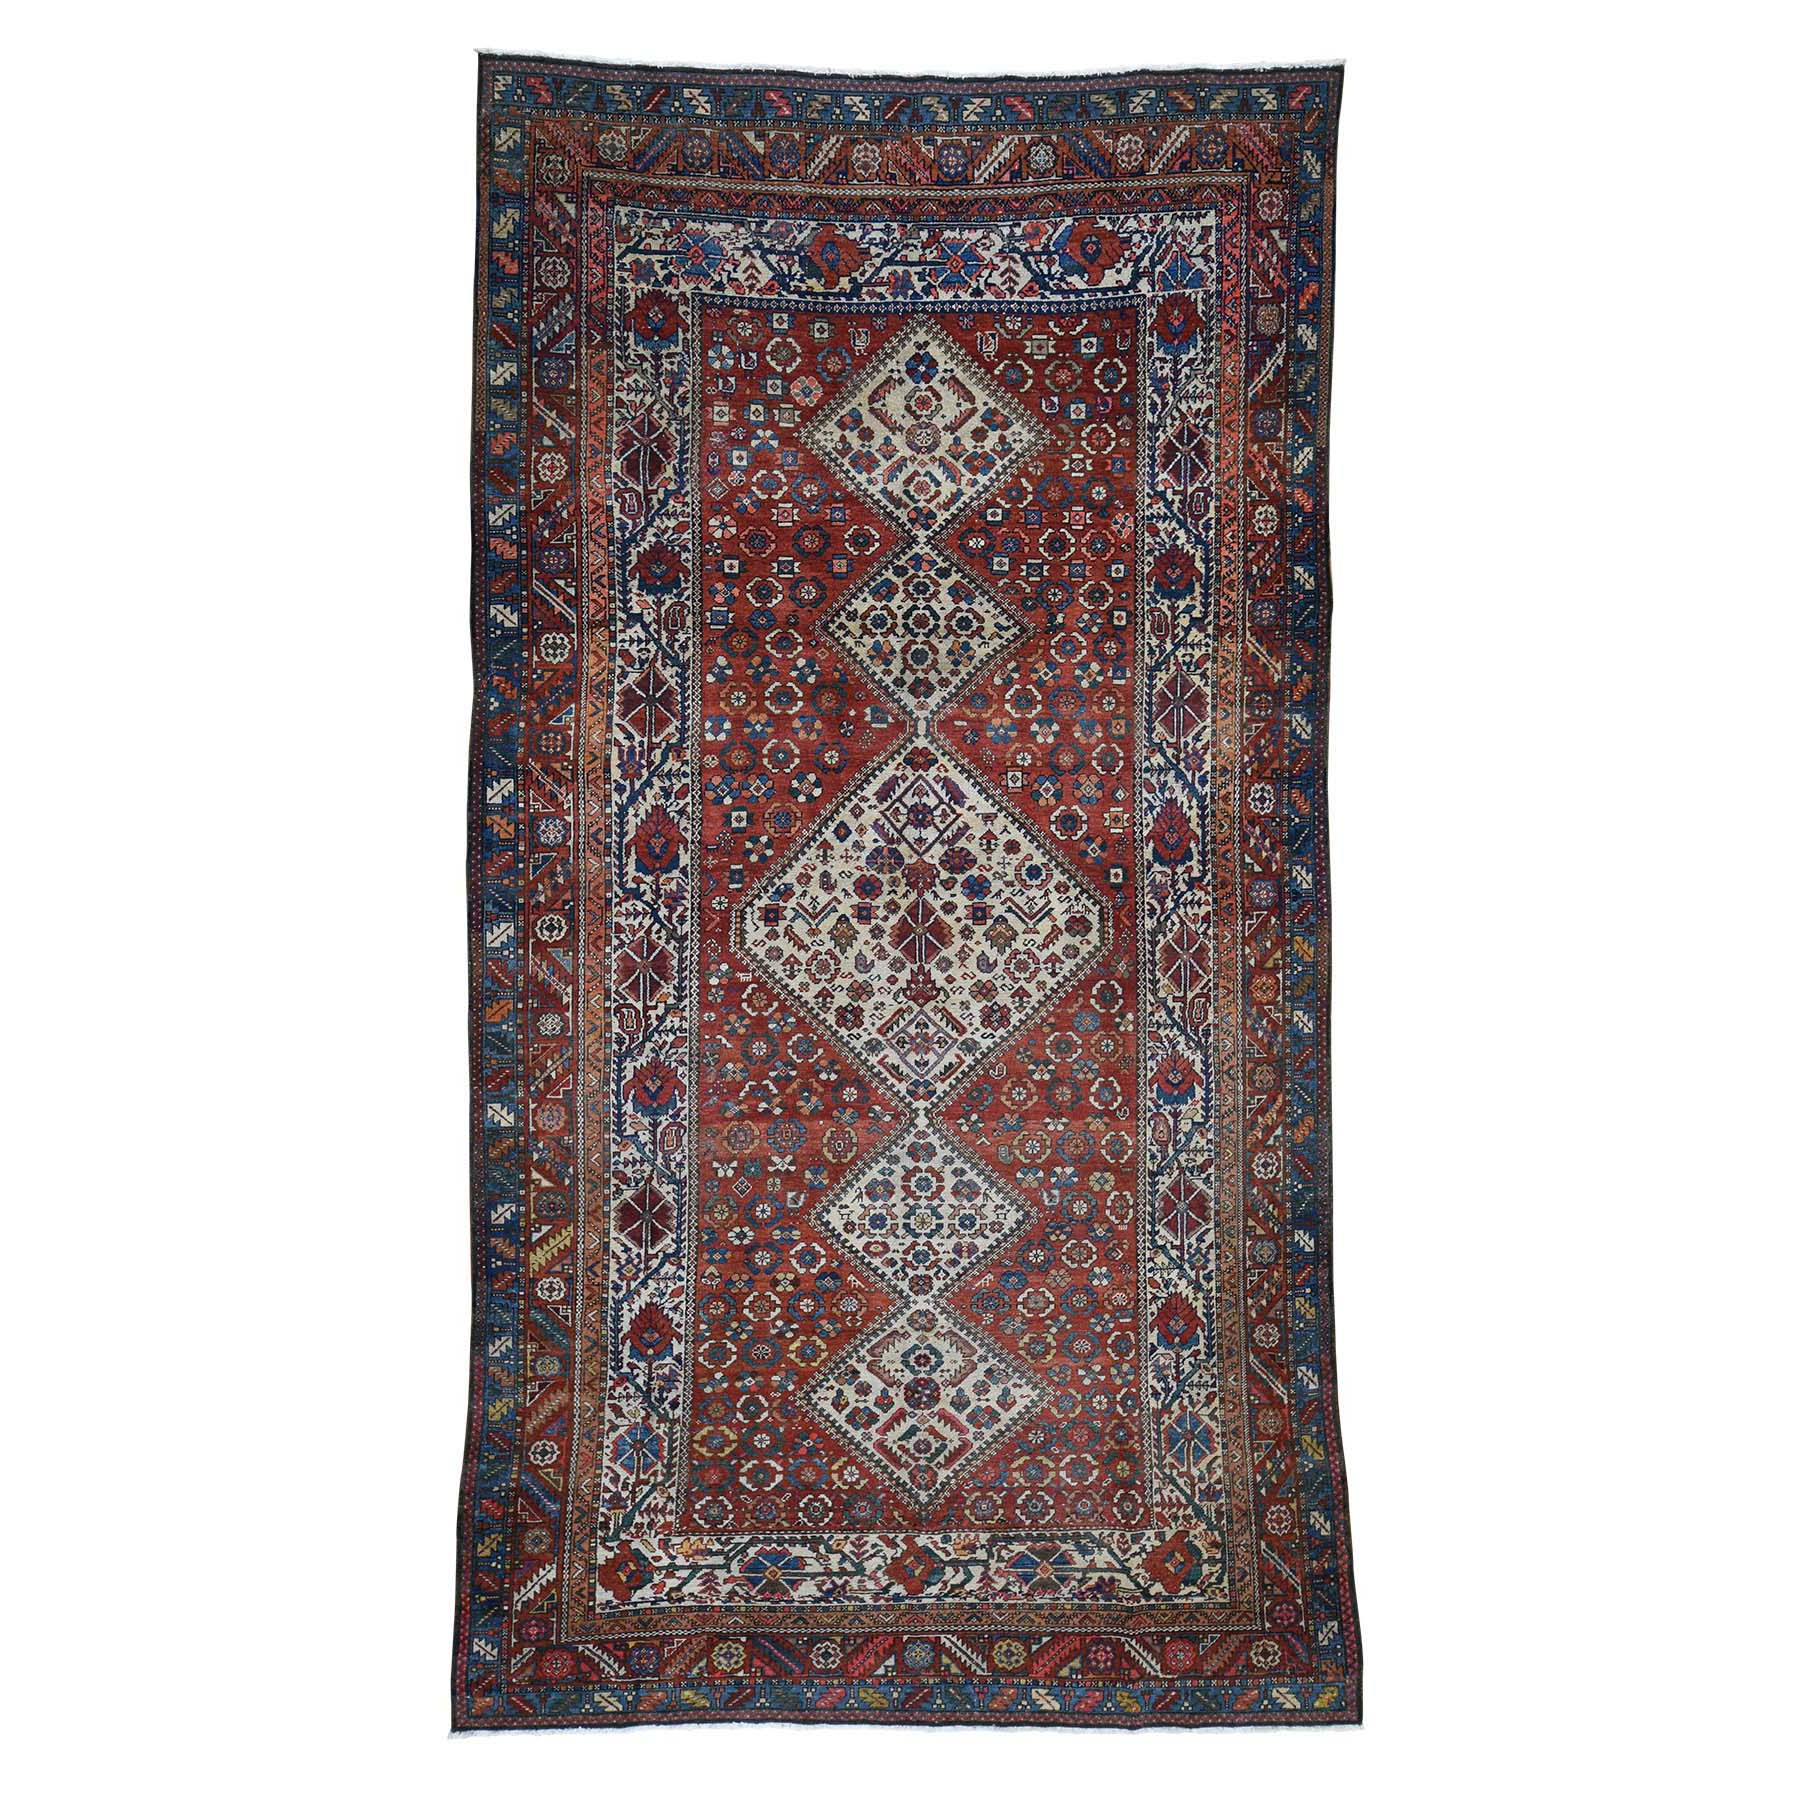 "6'8""X12'8"" Red Gallery Size Antique Persian Bakhtiari Good Con. Full Pile Pure Wool Hand-Knotted Oriental Rug moade9ac"